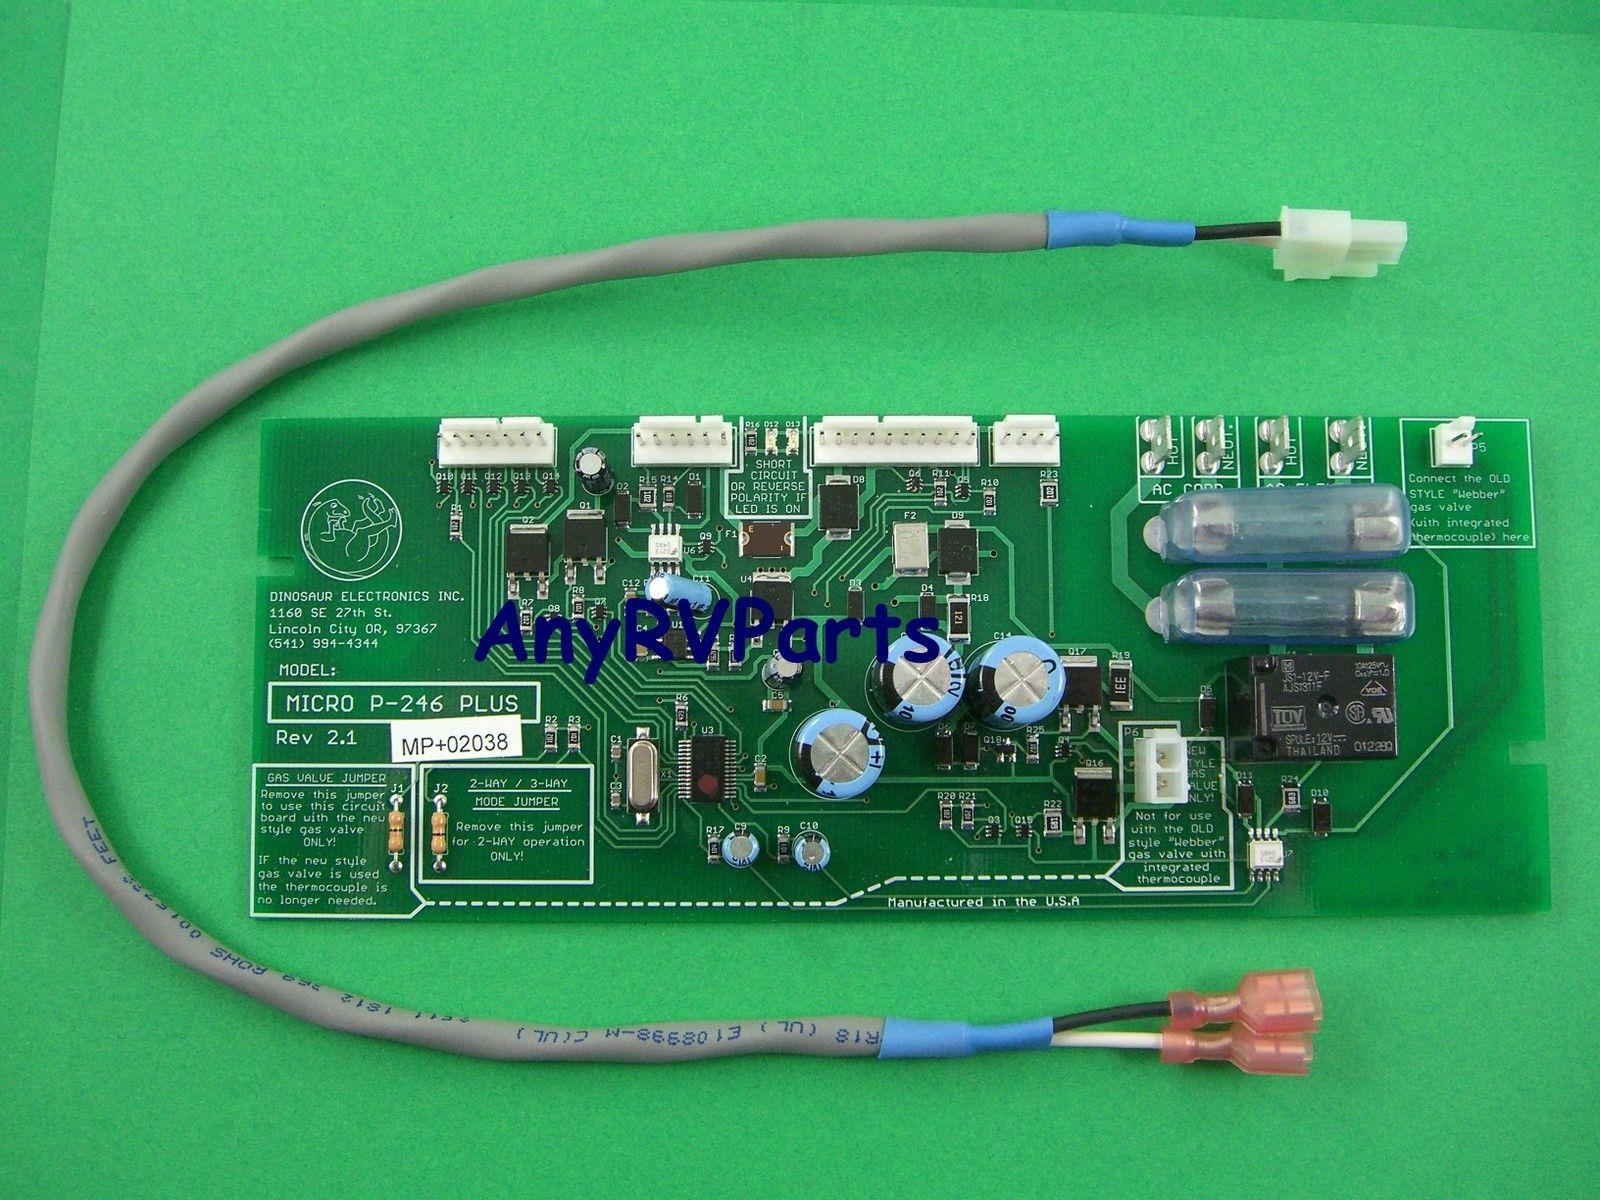 hight resolution of dometic refrigerator wiring diagram electric mx tl dinosaur p246 plus dometic refrigerator circuit board p246 ebay